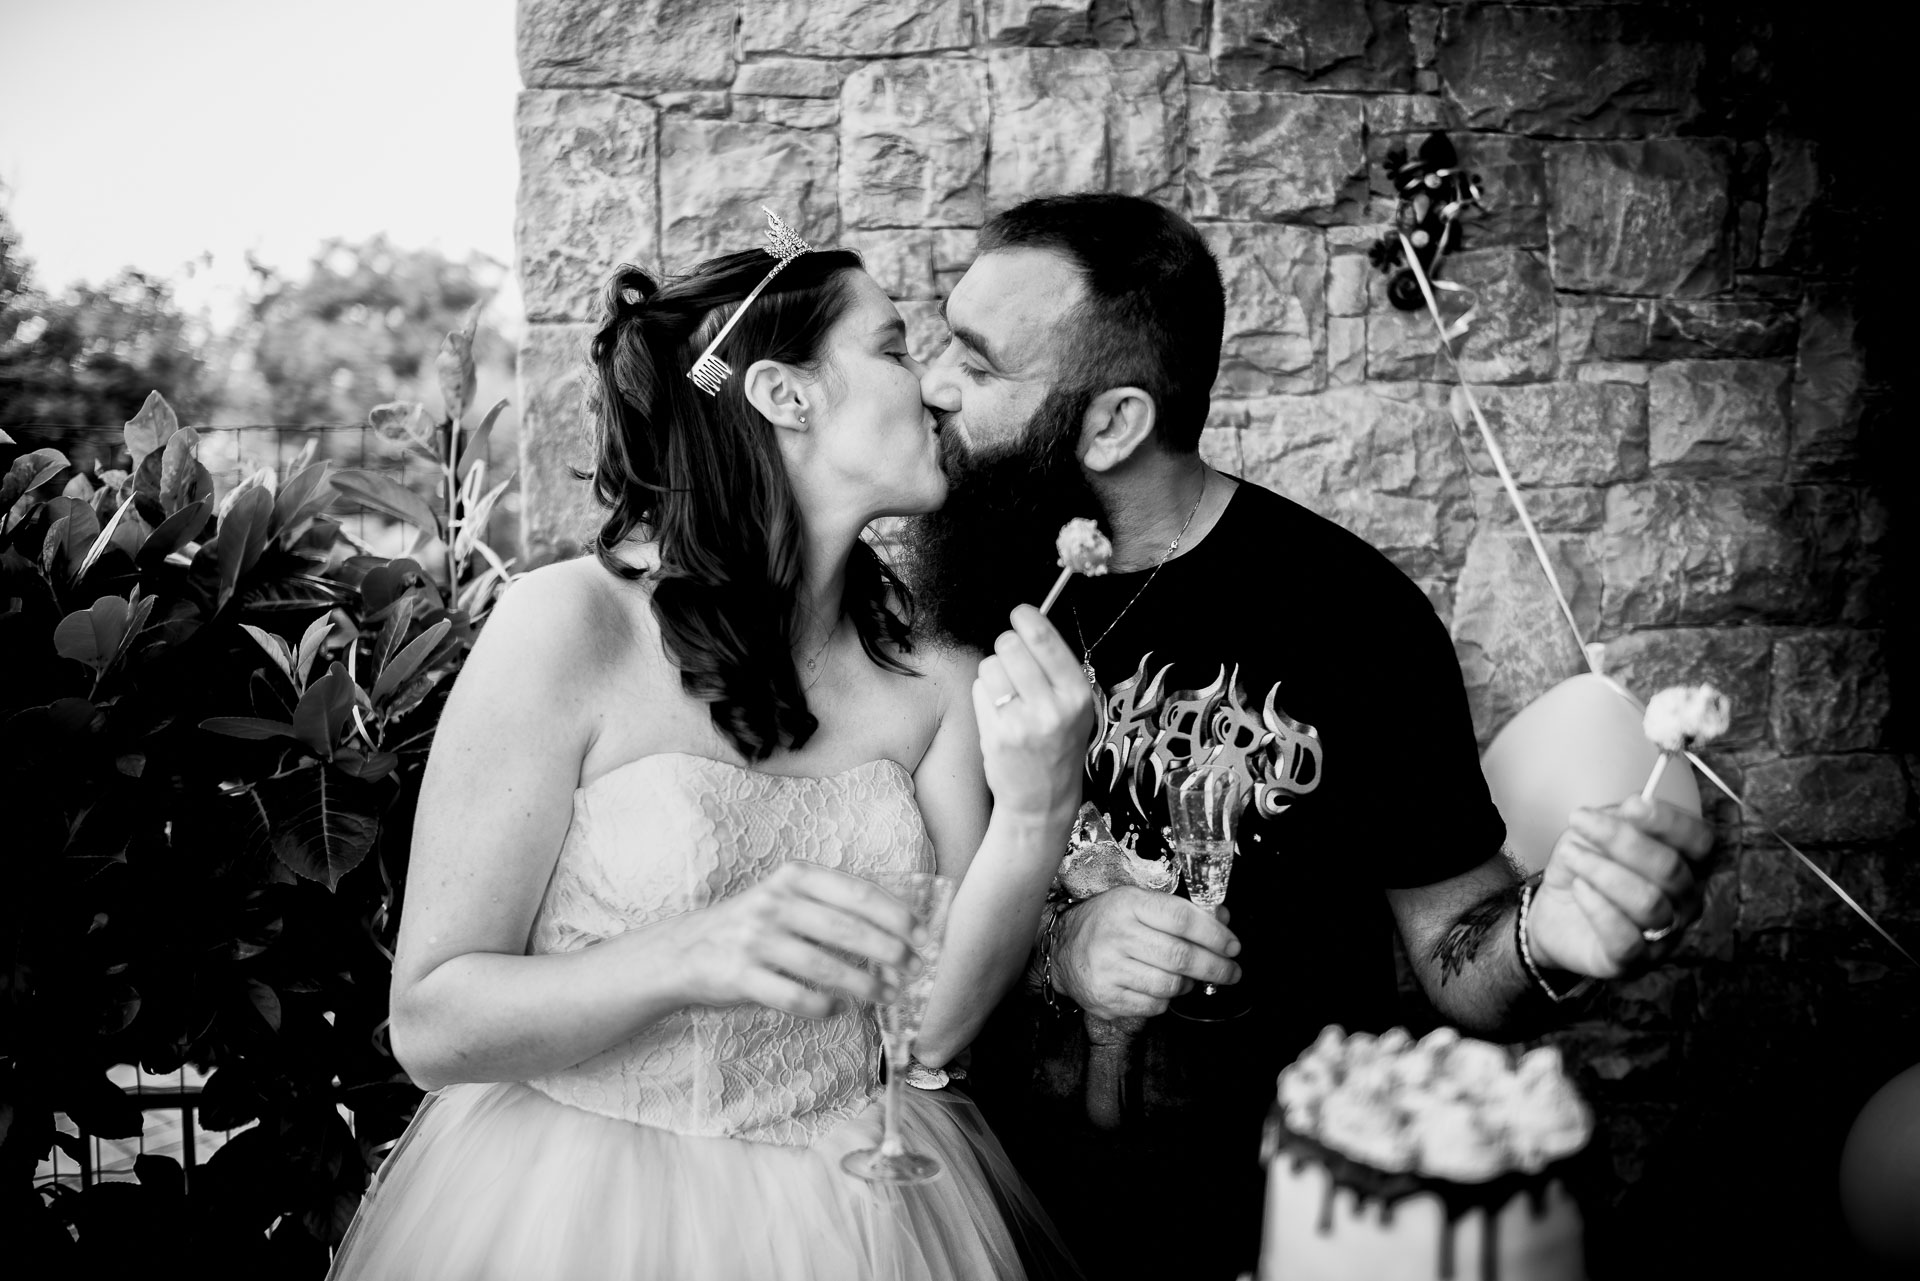 Brescia Backyard Wedding Reception Photography | champagne glasses in one hand and a piece of cake in the other